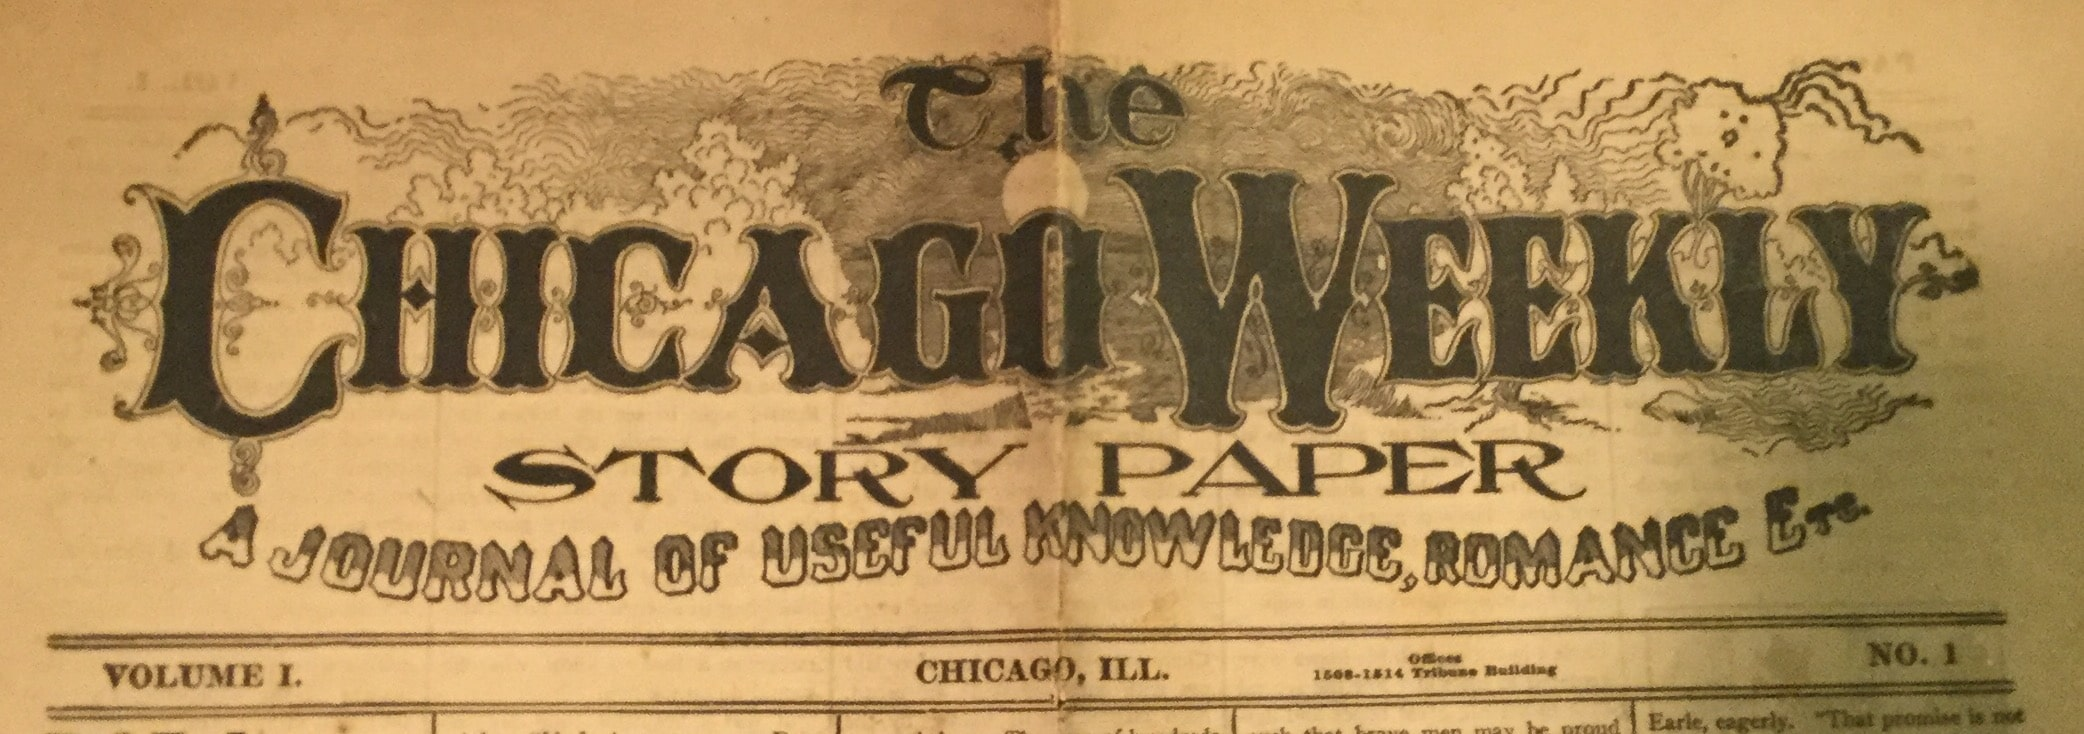 Chicago Story Paper